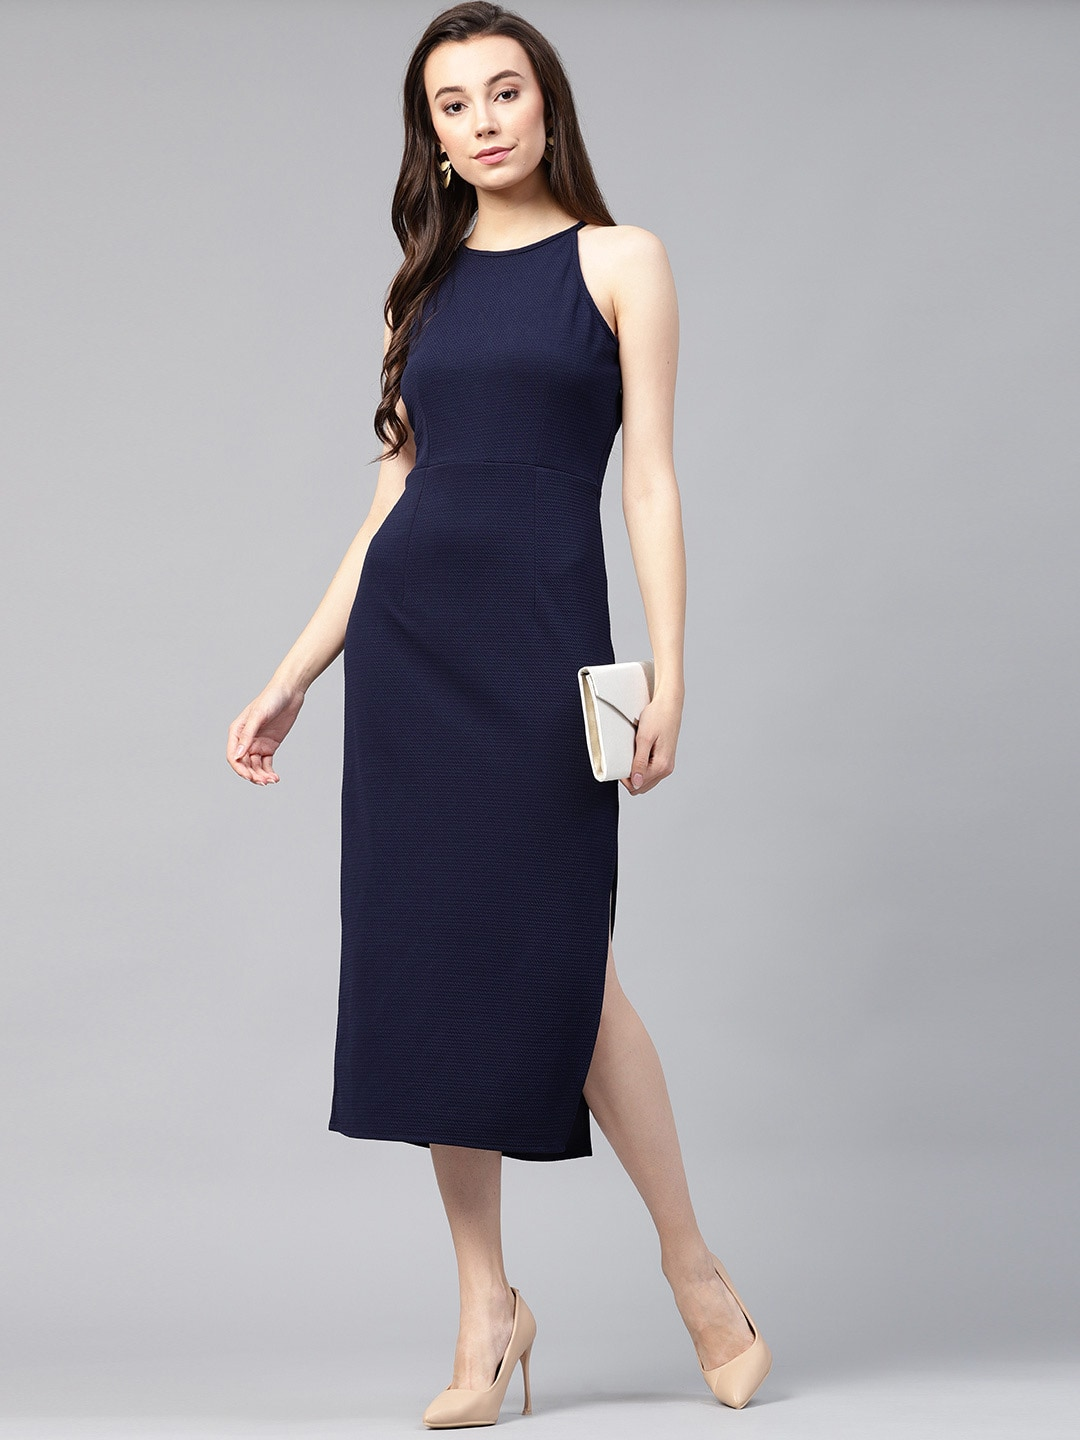 Midi Dresses - Buy Midi Dress for Women   Girl Online  cd6acd95c